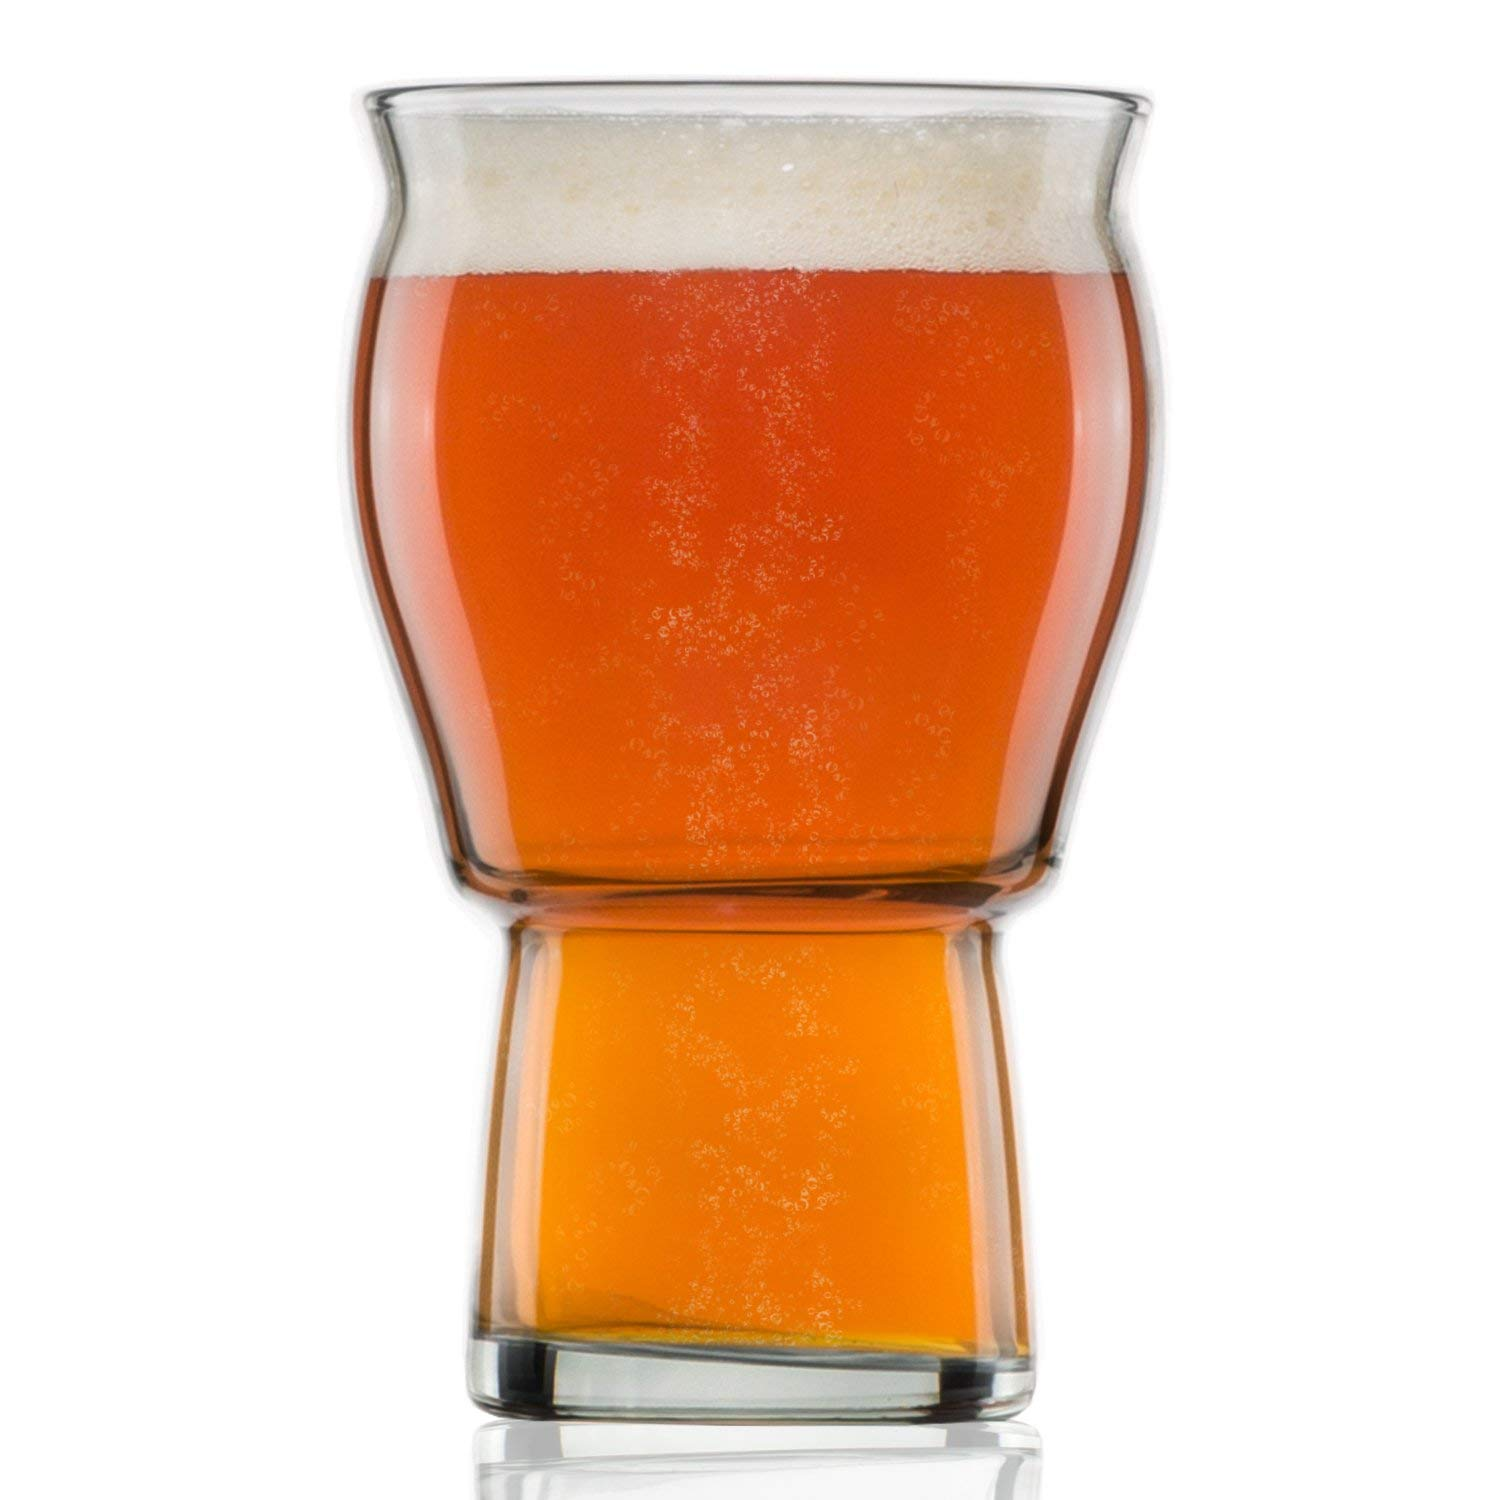 d233a303b Get Quotations · Nucleated Beer Pint Glass- A Beer Glass for Beer Drinkers  - Nucleated for Better Head